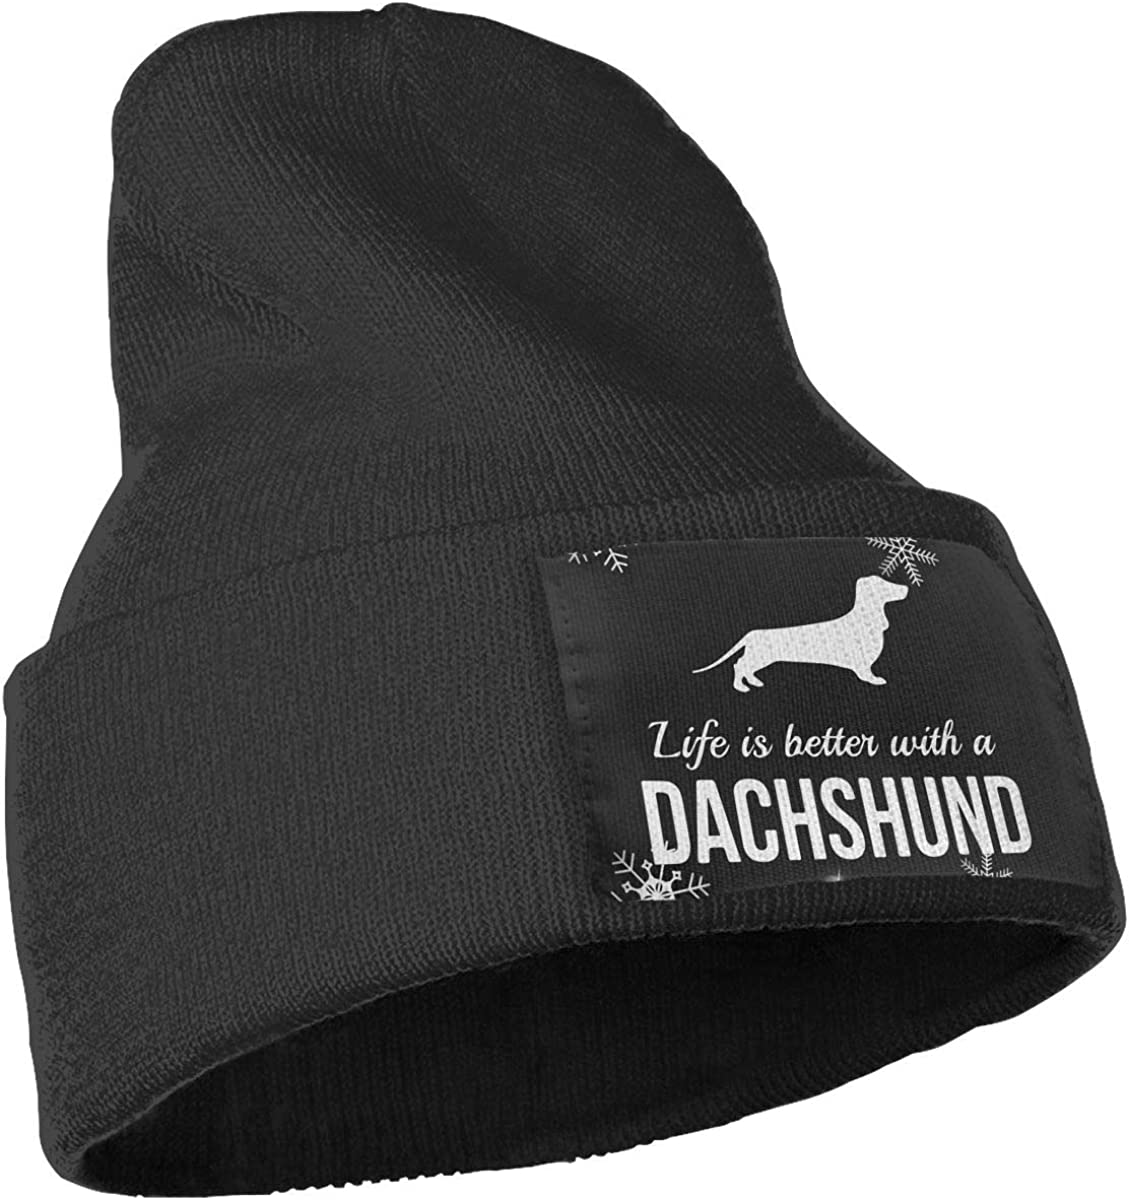 Life is Better with Dachshund Ski Cap Men /& Women Knitting Hats Stretchy /& Soft Beanie